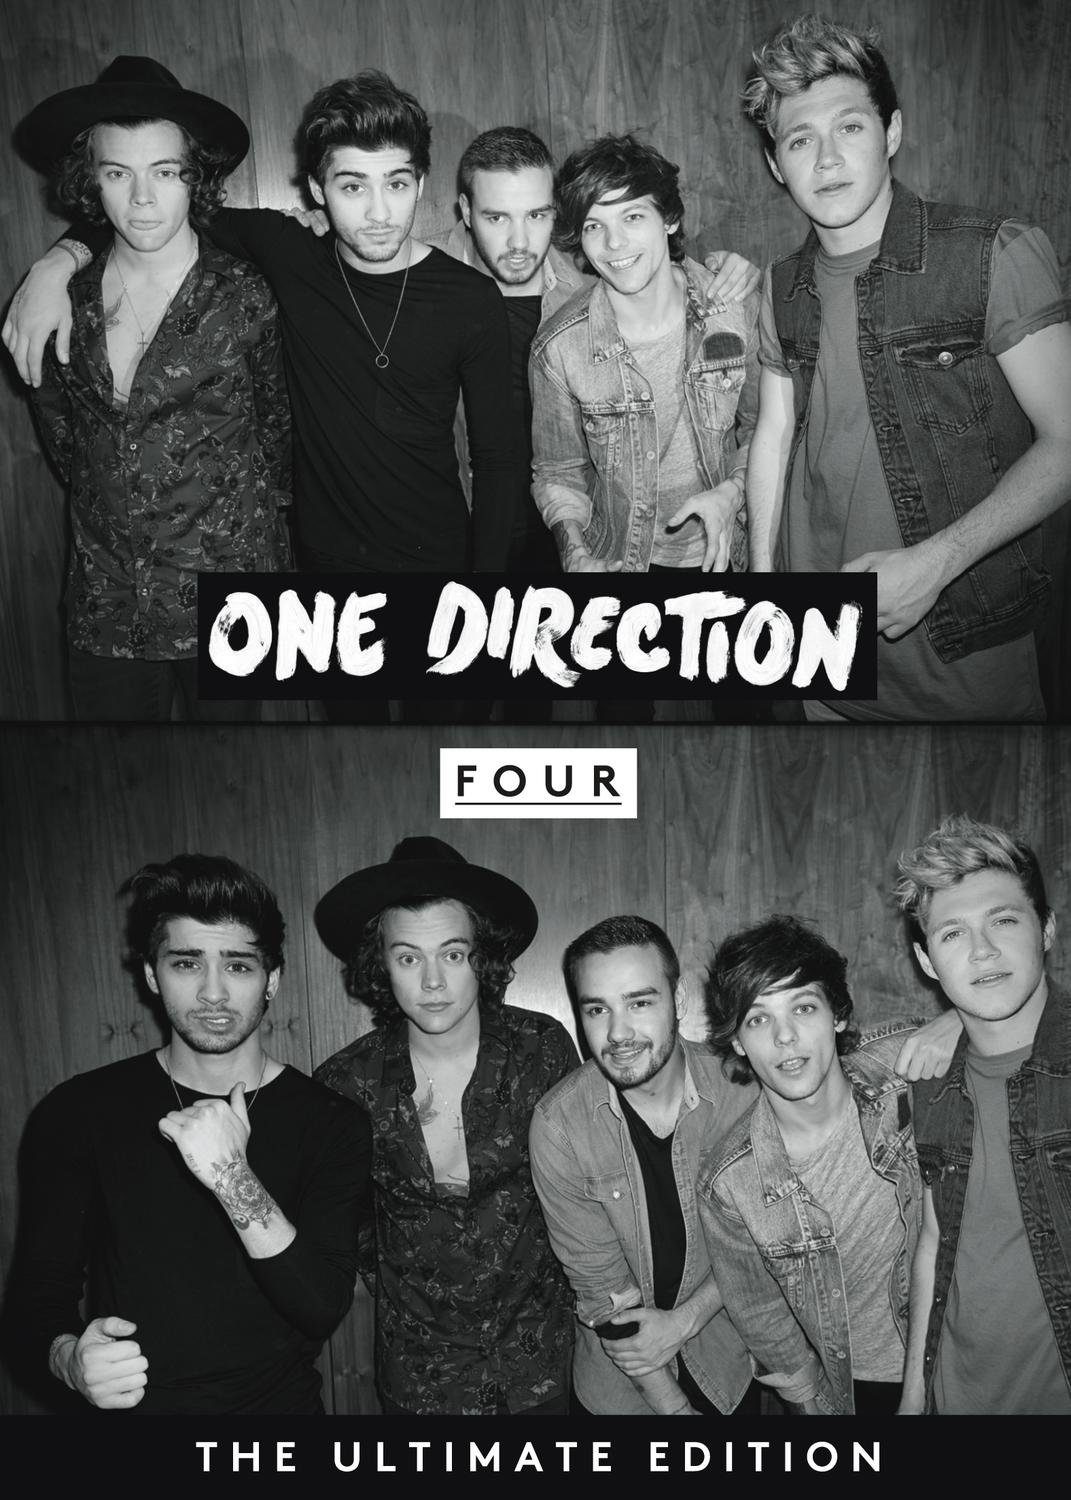 Four (Ultimate Yearbook Edition) Ultimate Edition One Direction 30591192 Pop Rock